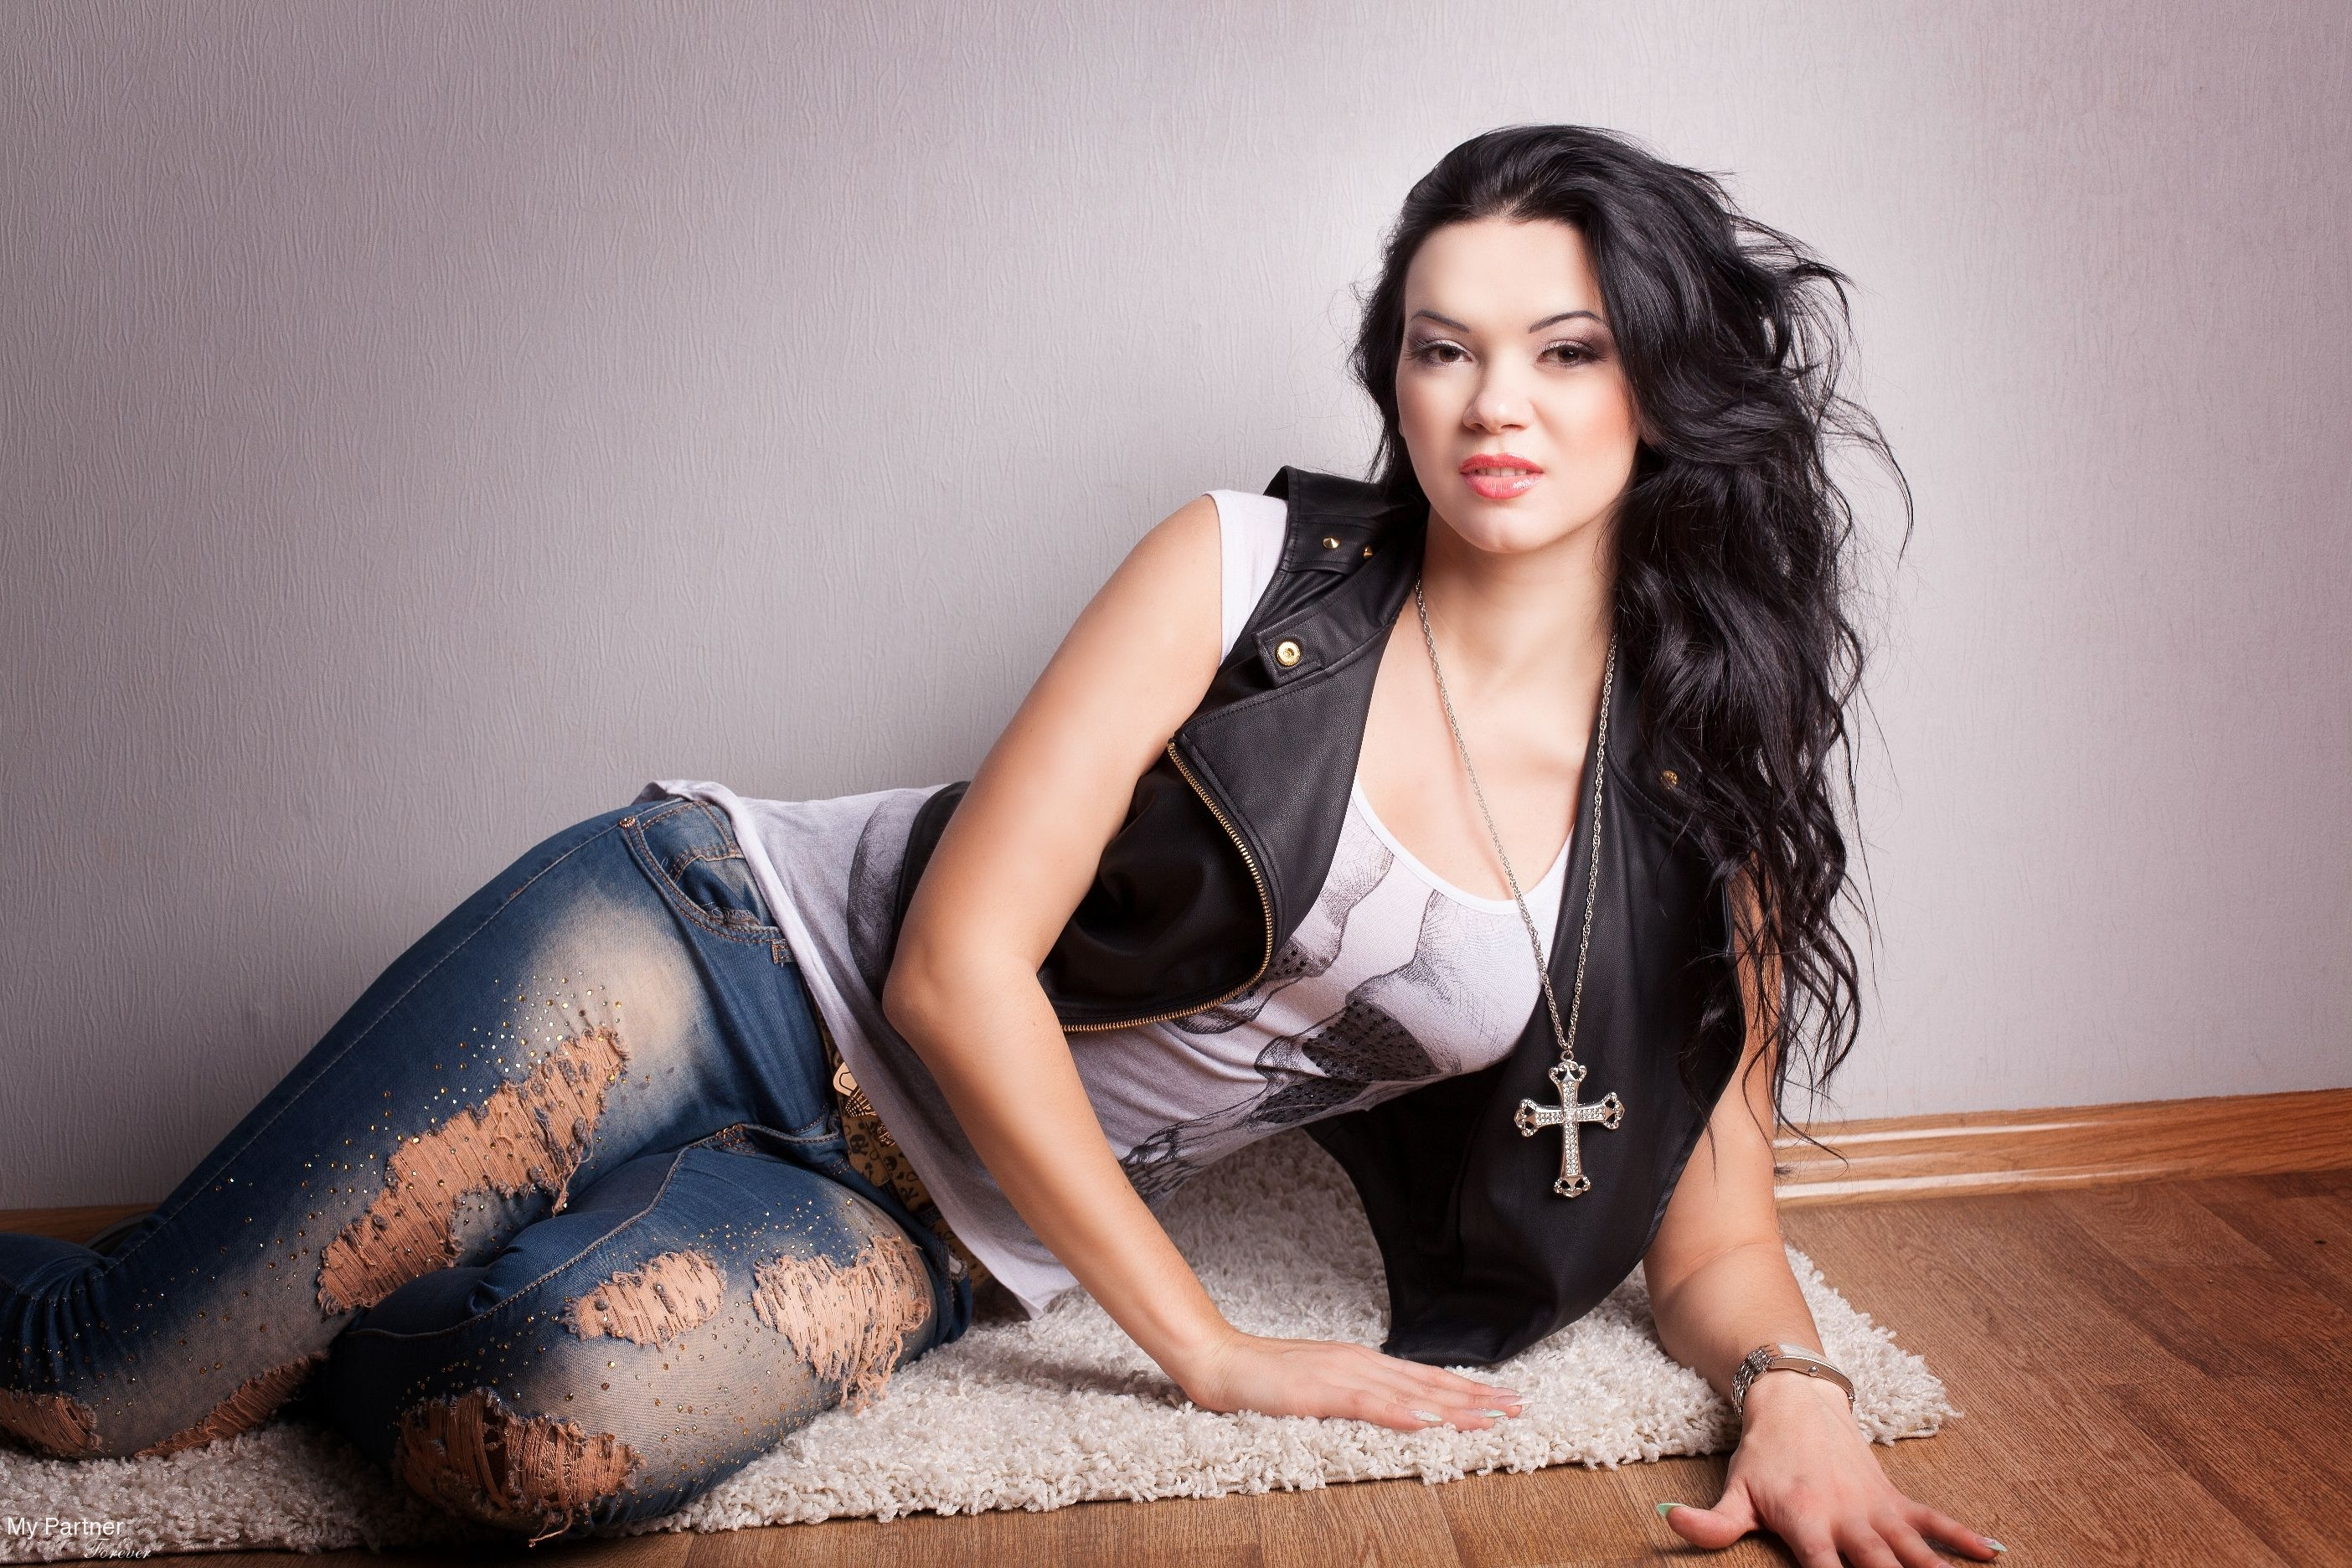 larisa mature women dating site Honest, serious aobut the relations, the one who has similat interests as i do, which is to take care of animals and nature the one who accepts peopl.